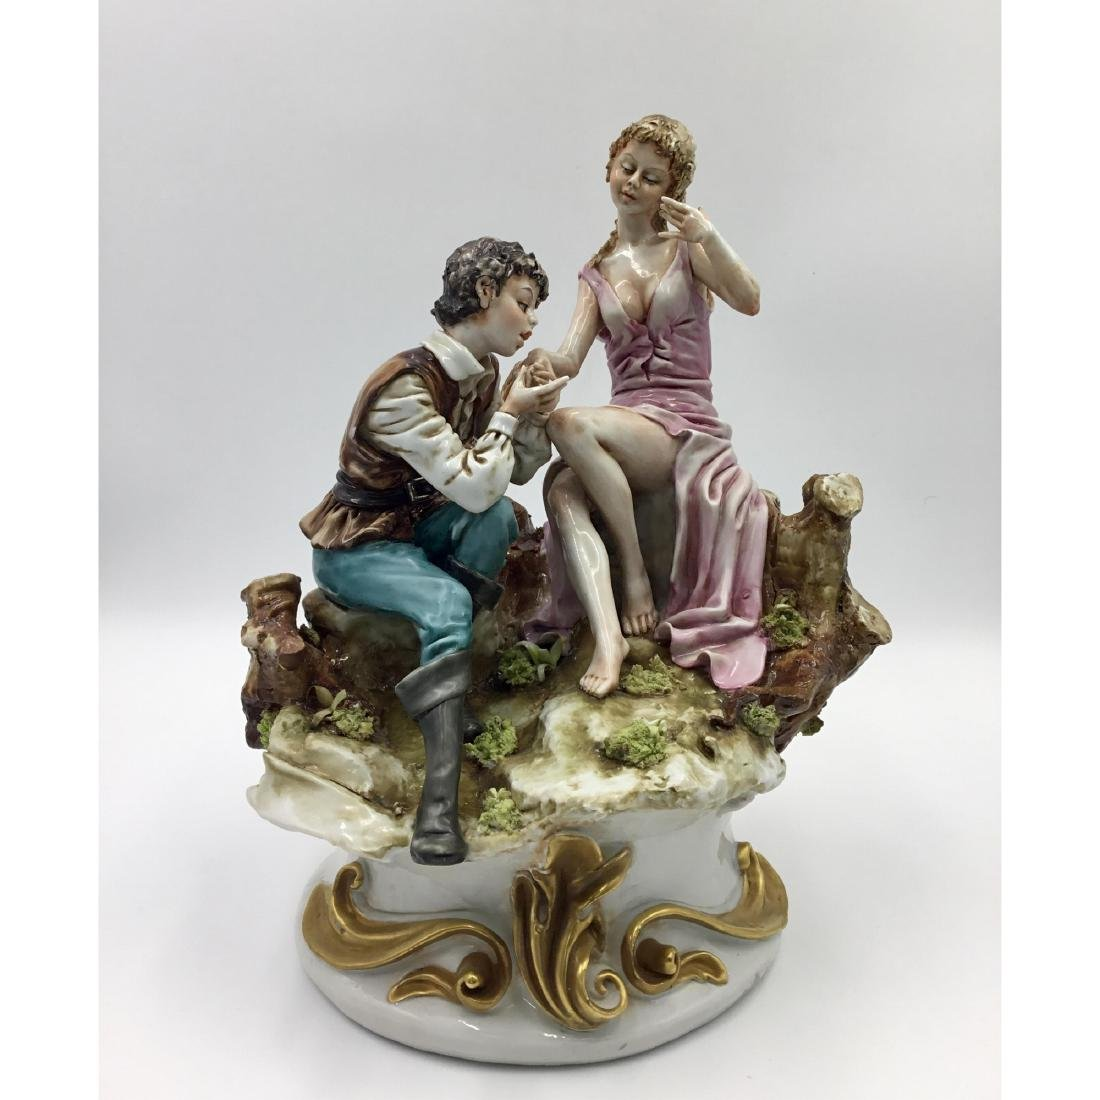 CAPODIMONTE LARGE PORCELAIN MAN & WOMAN FIGURINE